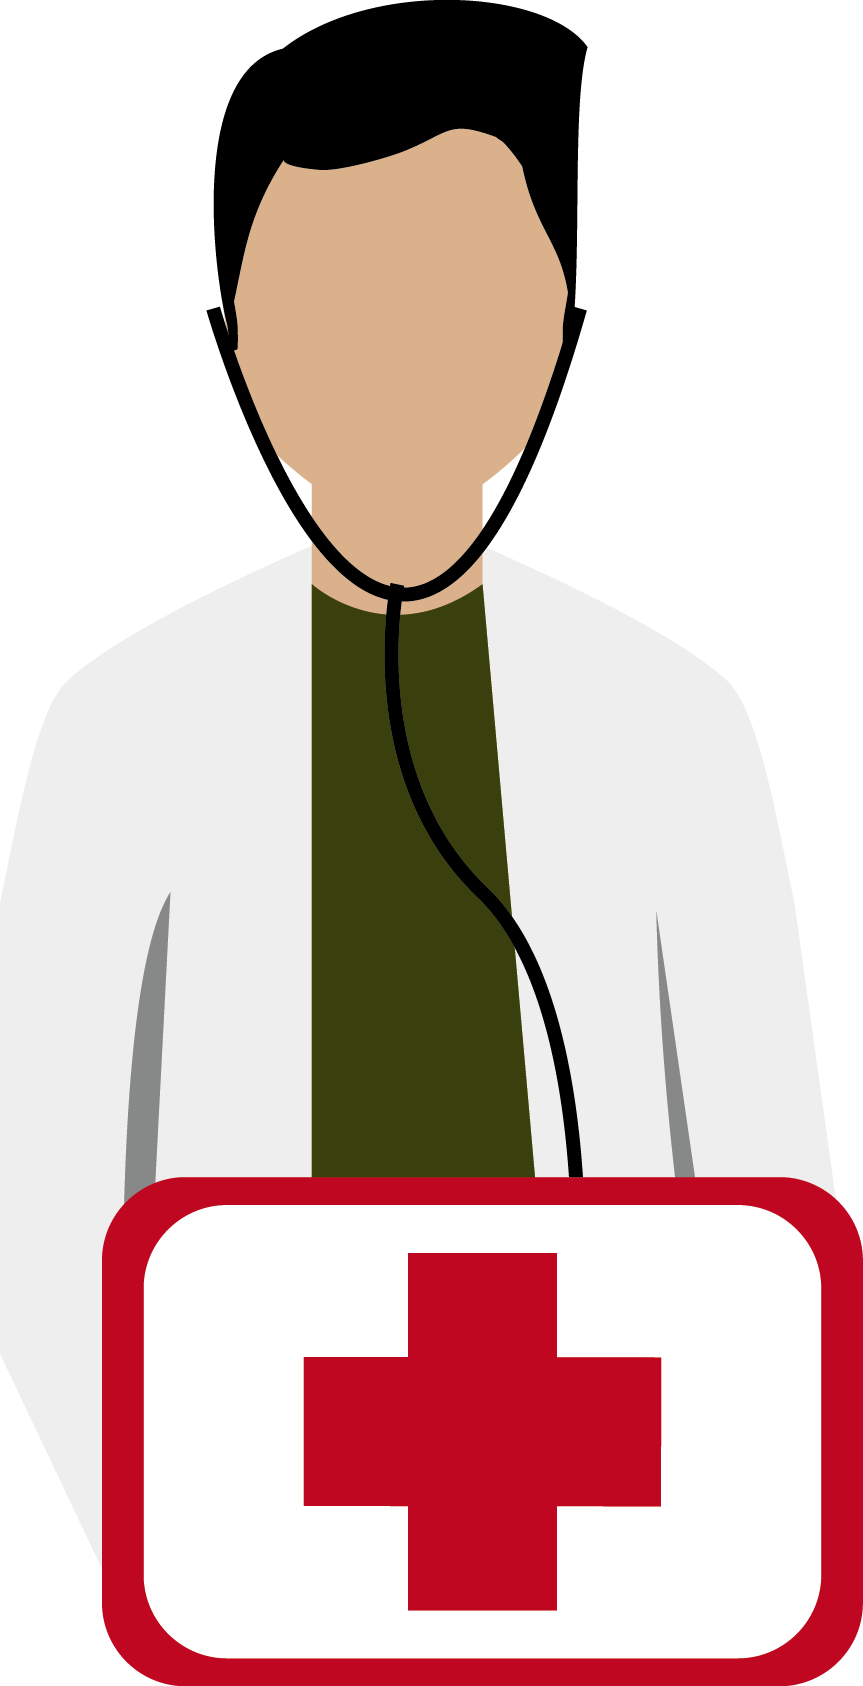 Veterinarian clipart science exploration. Stem careers by interest